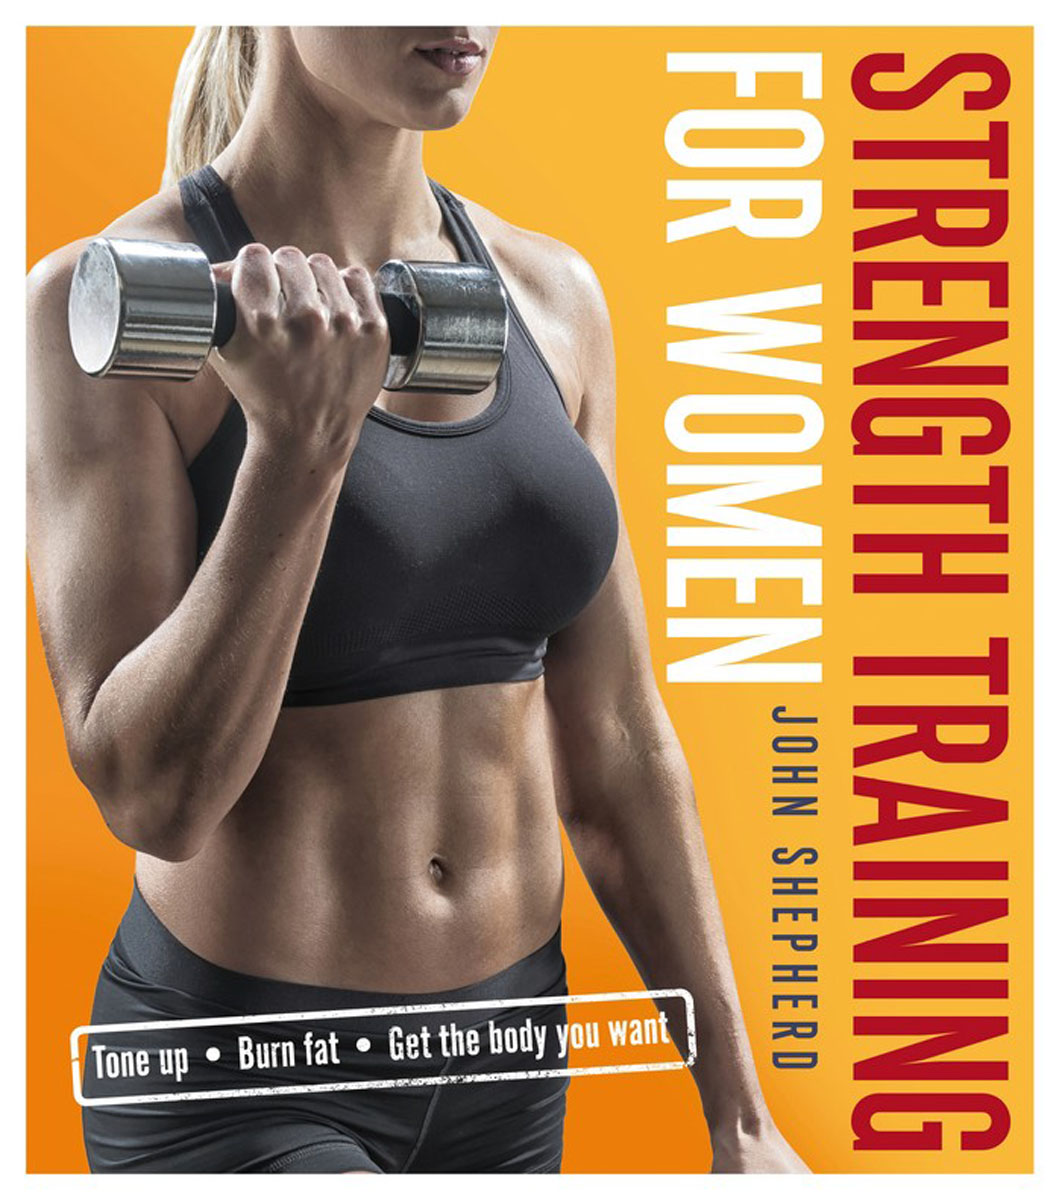 Strength Training for Women resistance training principles adaptations